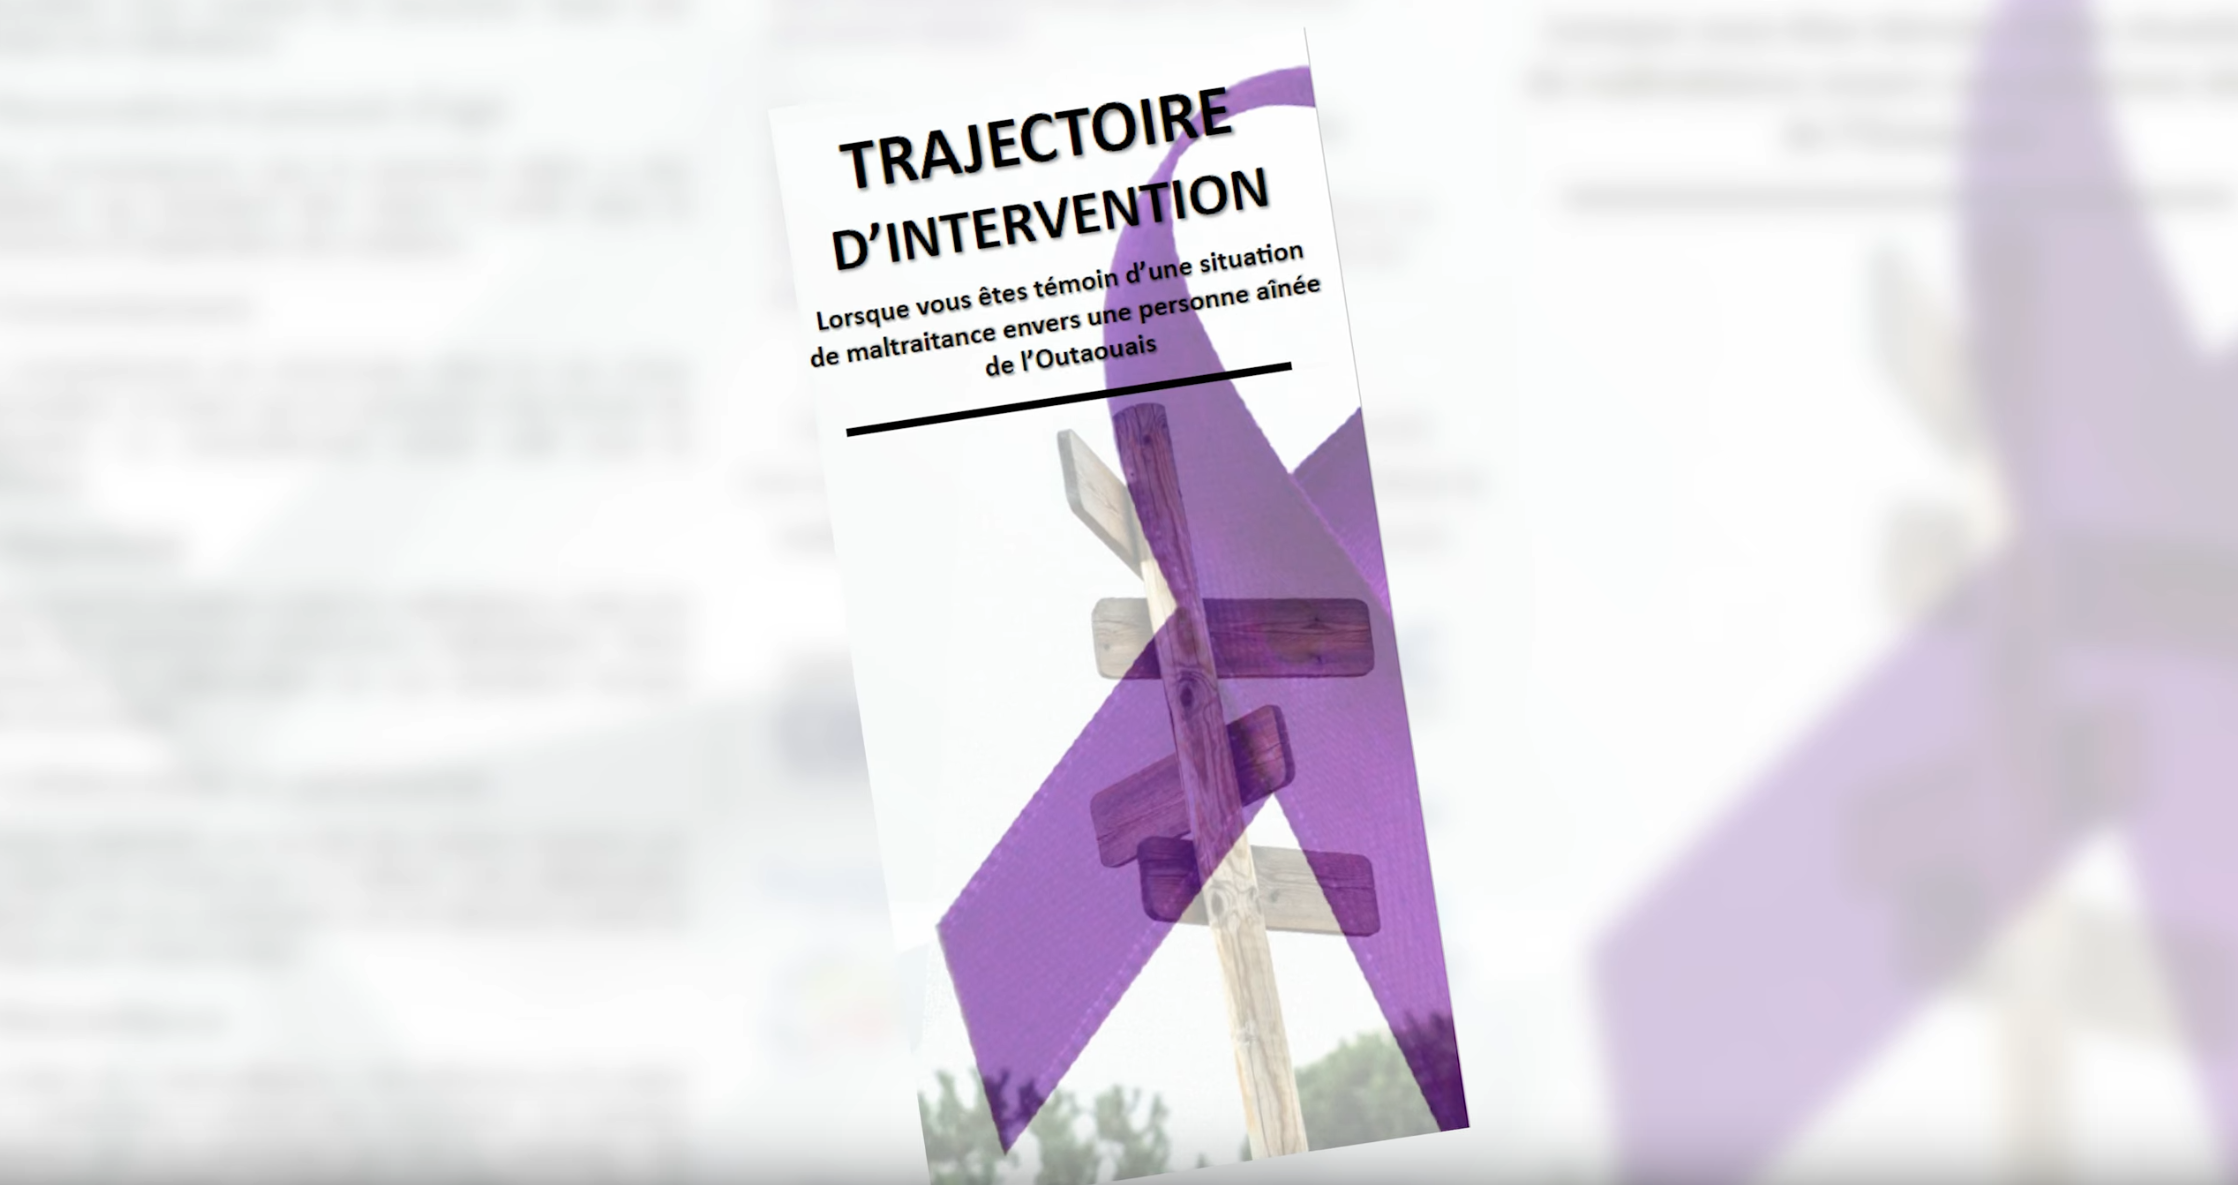 Trajectoire d'intervention